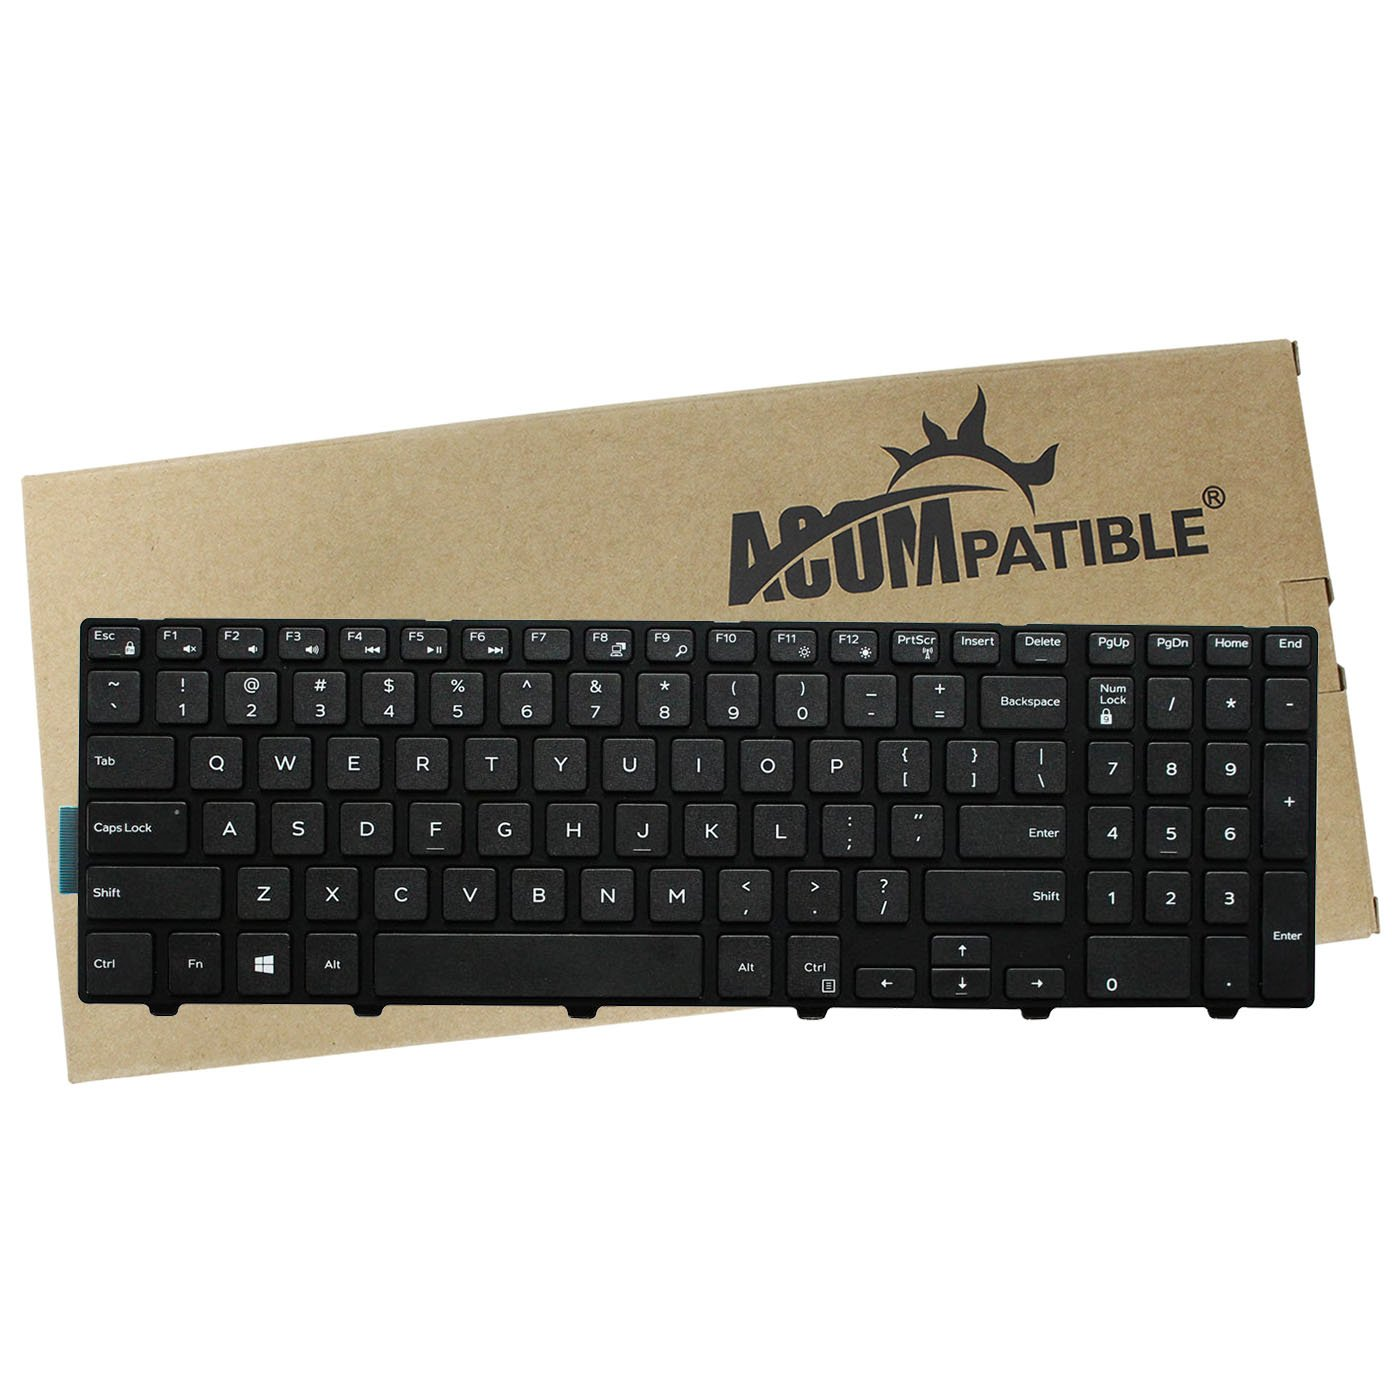 Replacement Keyboard for Dell Inspiron 15 3000 Series 3541 3542 3543 3558  3559 New Version Laptop Without Backlight